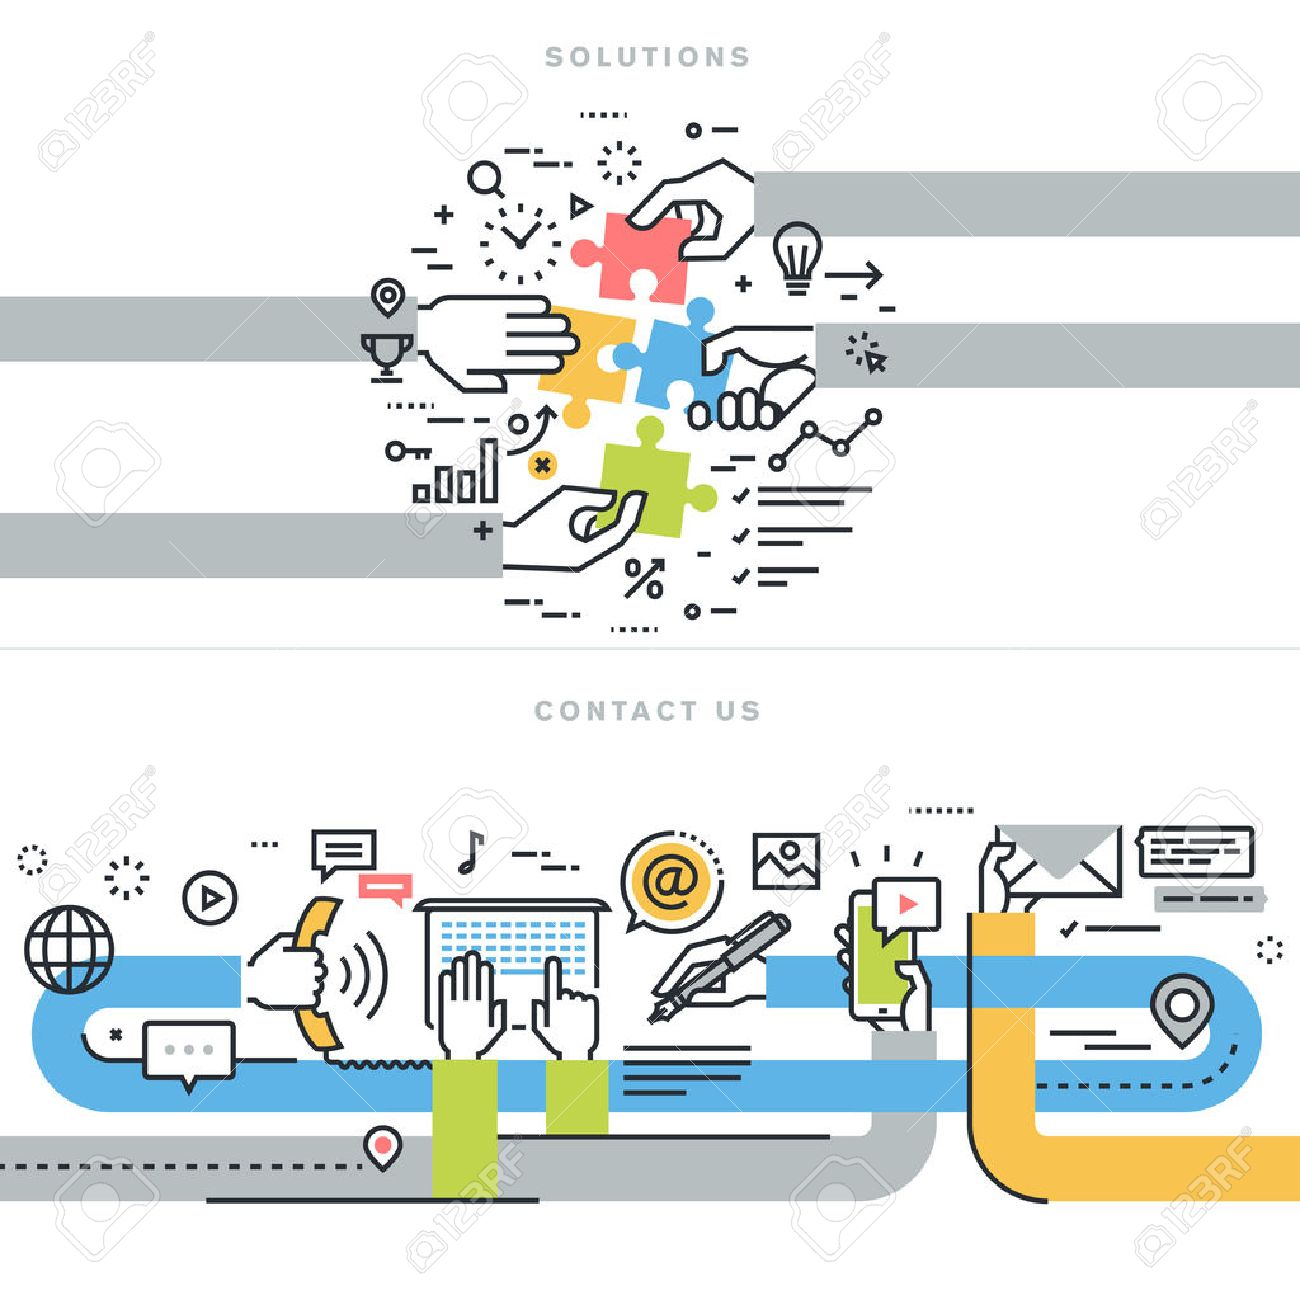 Flat line design vector illustration concepts for website banners for contact us and solutions web page, company contact information, business solutions and services, consulting, strategy and planning Stock Vector - 47892792